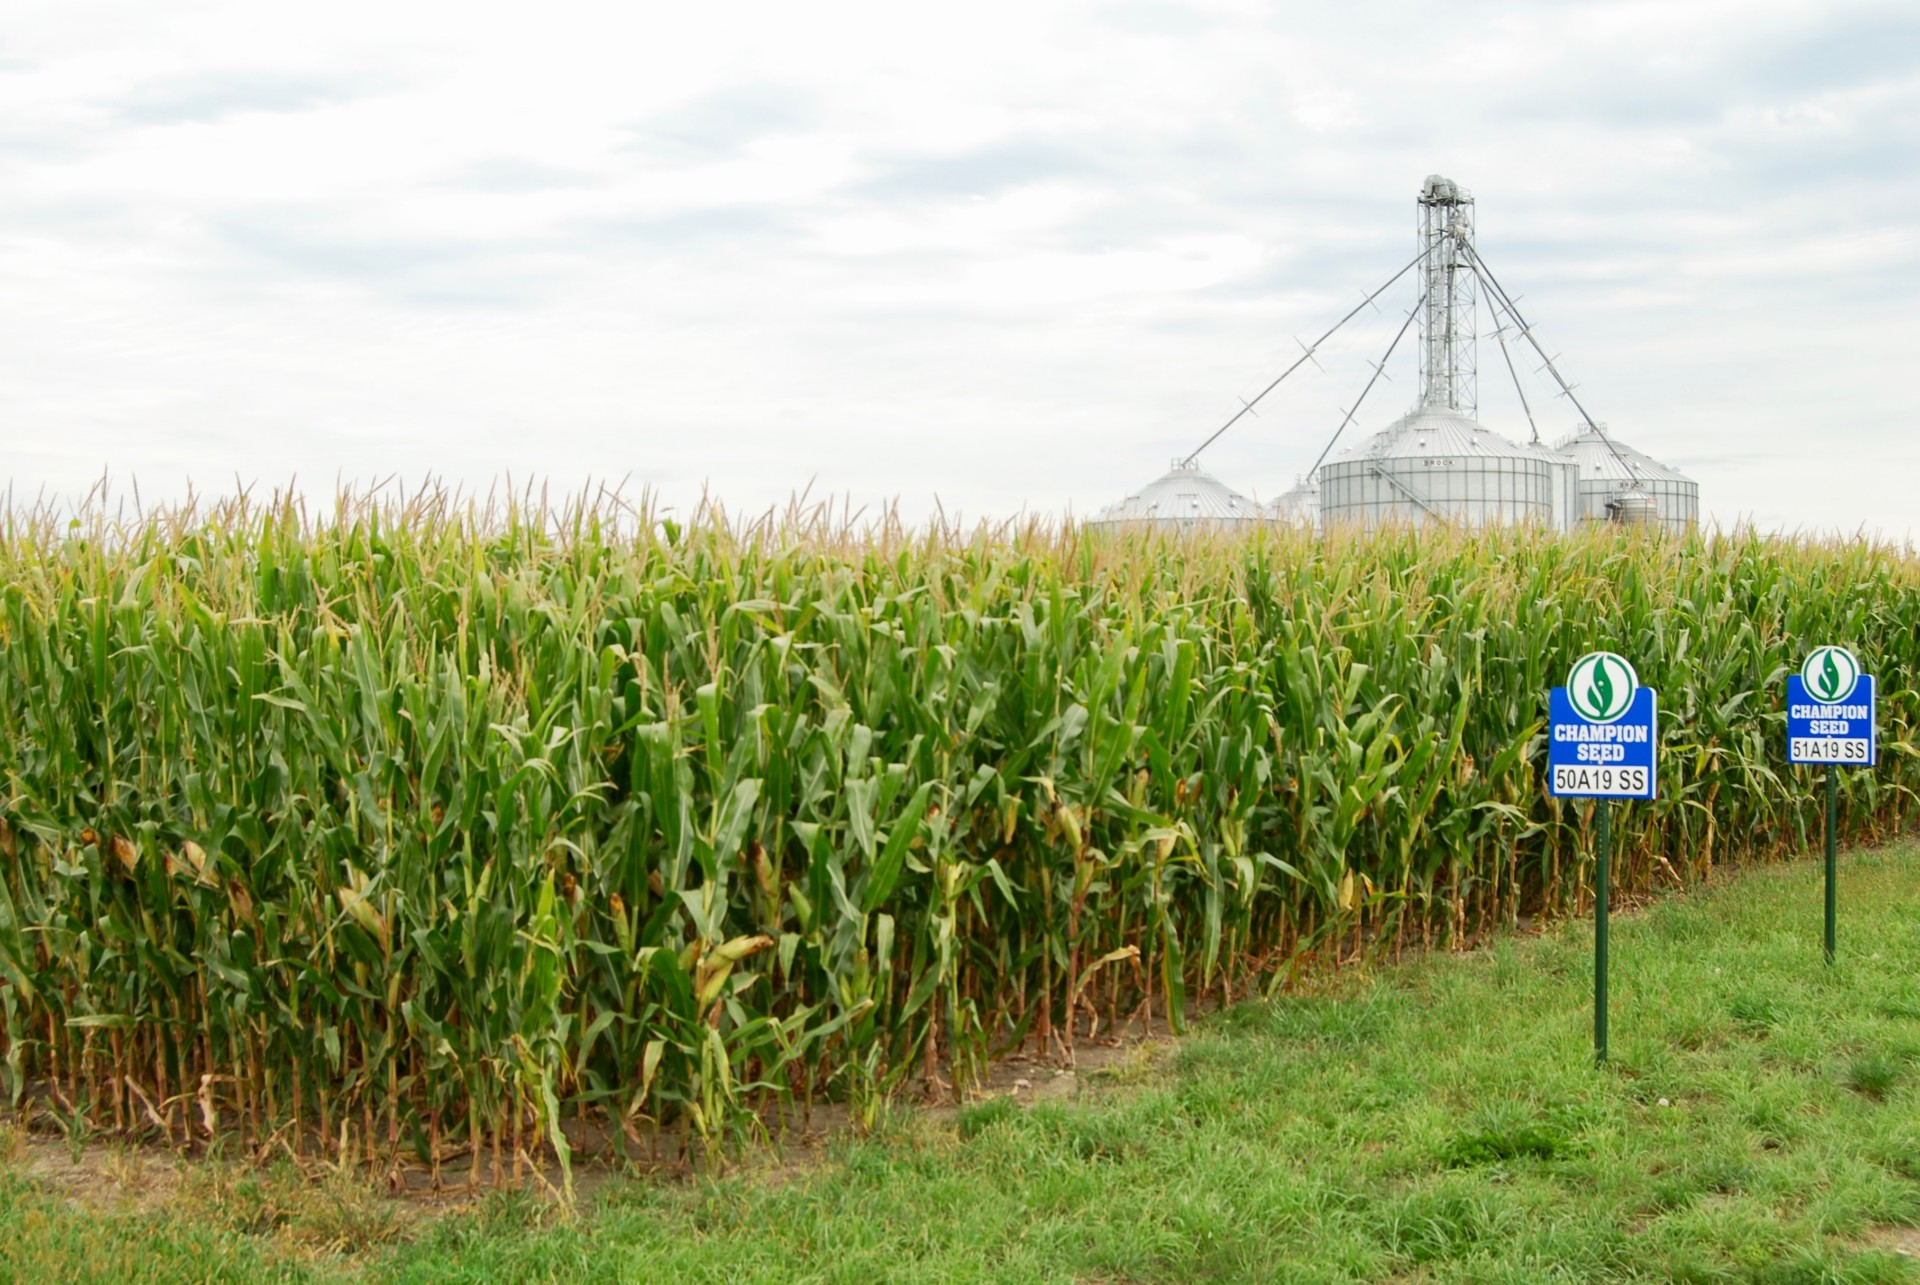 Corn field with Champion Seed trait signs